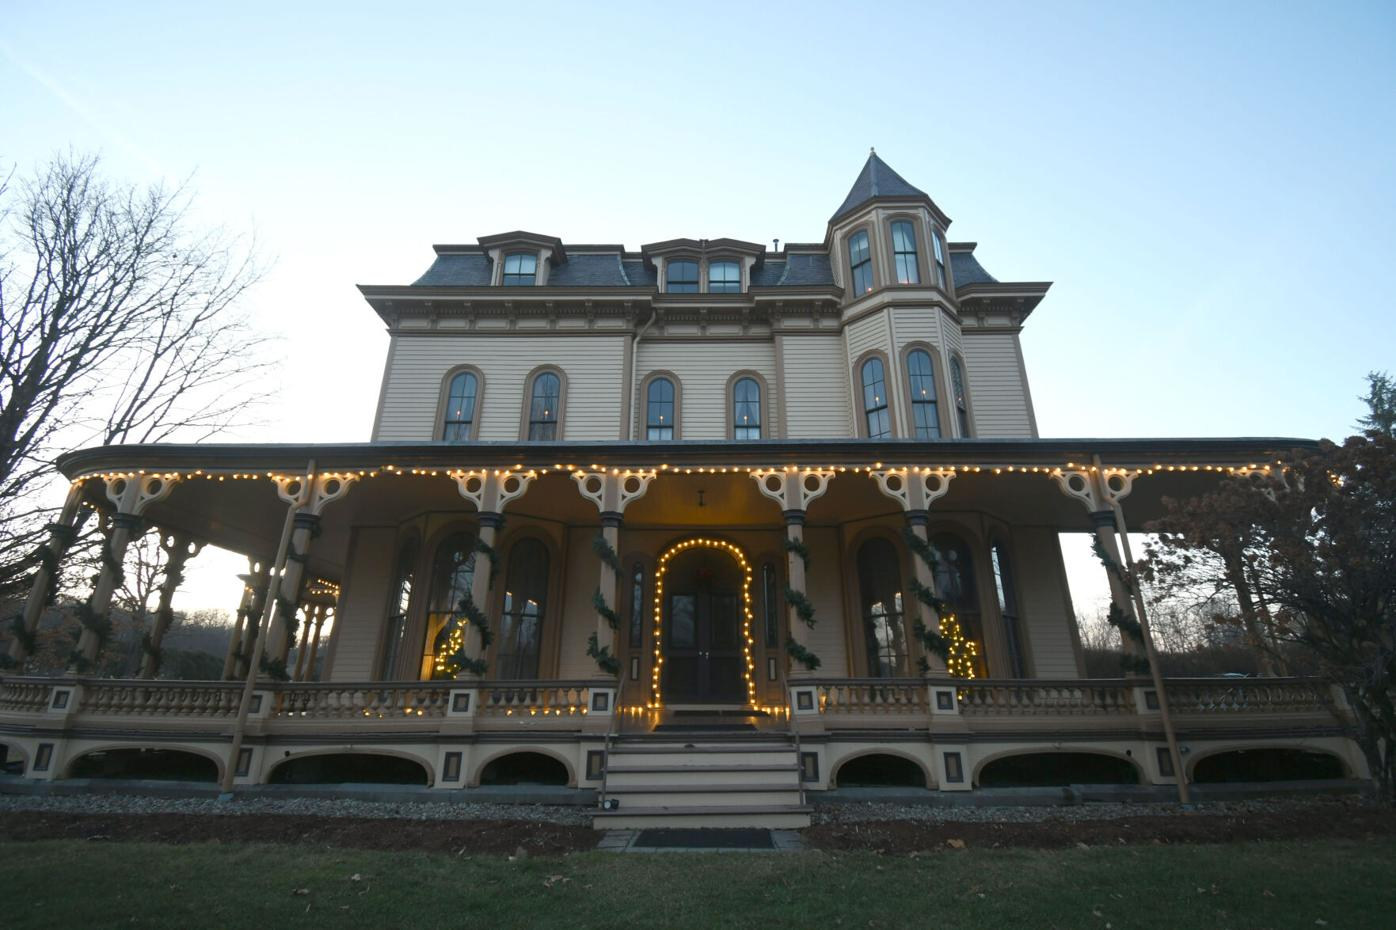 Park-McCullough Historic Governor's Mansion